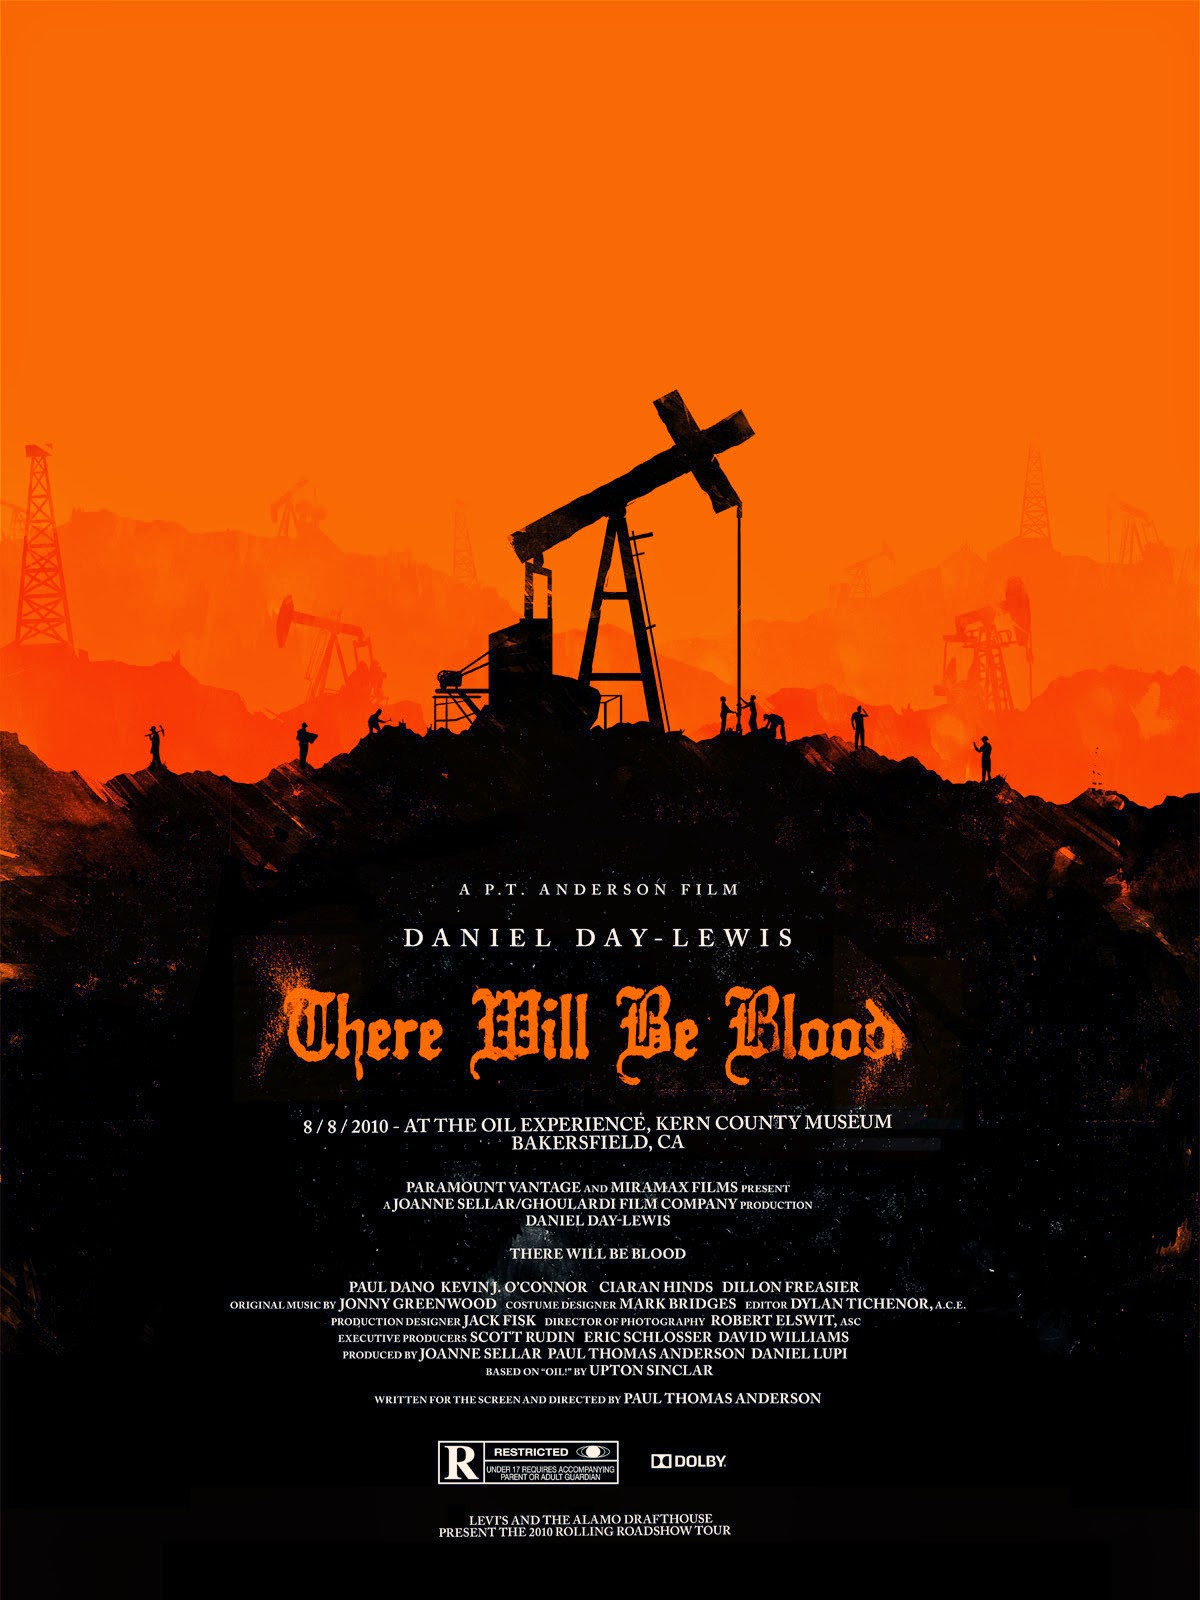 there will be blood dir paul thomas anderson 2007 discreet there will be blood american alamo drafthouse poster via flick facts click the poster for a larger image